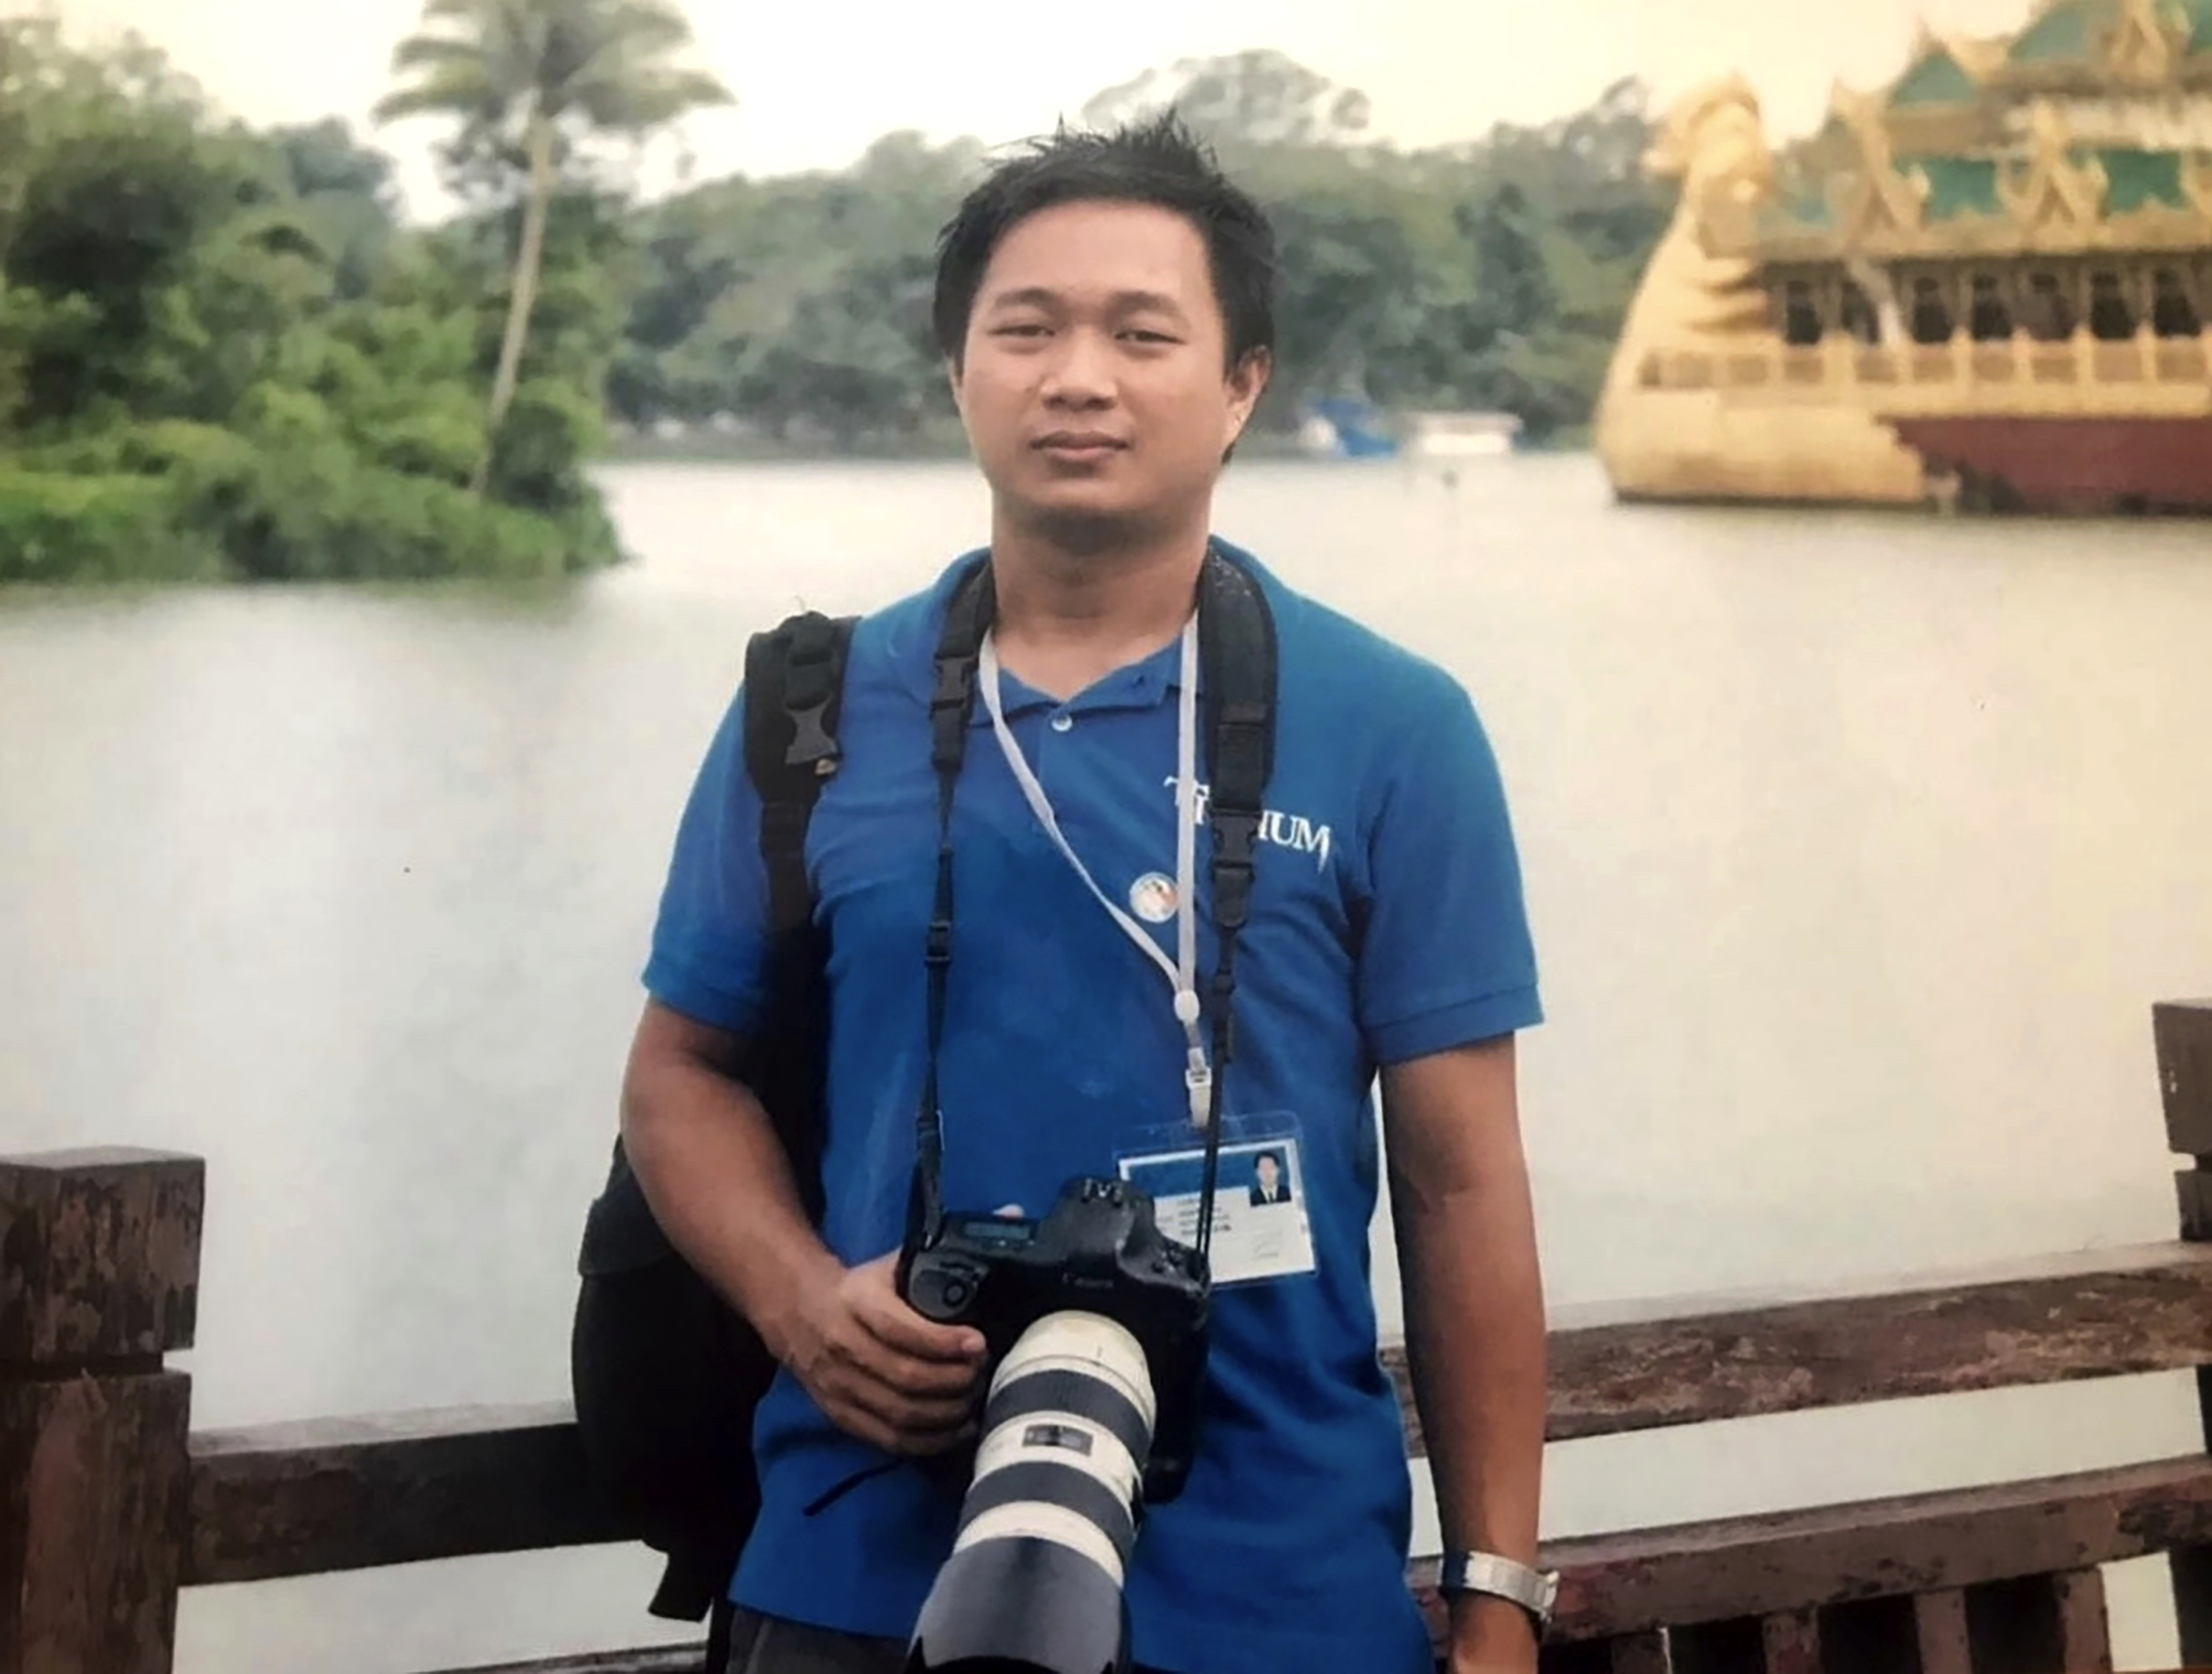 This undated family photo provided on Wednesday, March 3, 2021 shows Associated Press journalist Thein Zaw in Yangon, Myanmar. Authorities in Myanmar charged Thein Zaw and five other members of the media with violating a public order law that could see them imprisoned for up to three years.